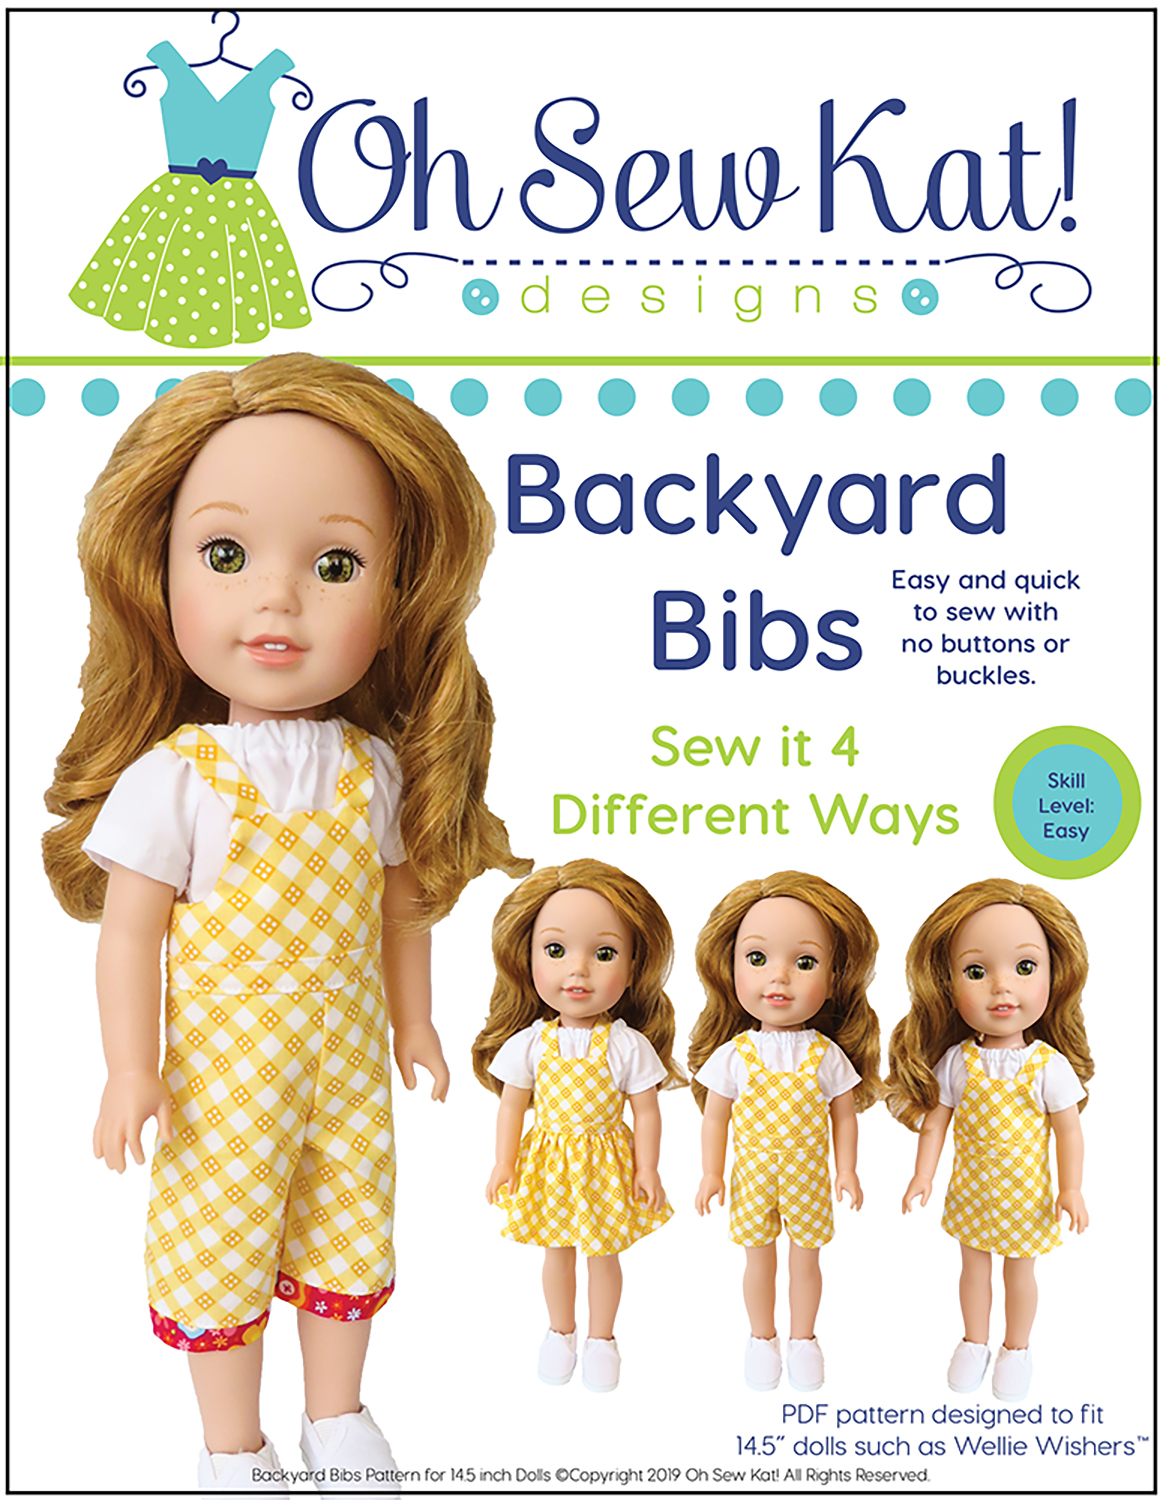 Easy sewing pattern for Wellie Wishers and Glitter Girls 14 inch dolls- Backyard Bibs PDF pattern from Oh Sew Kat! #welliewishers #dollclothes